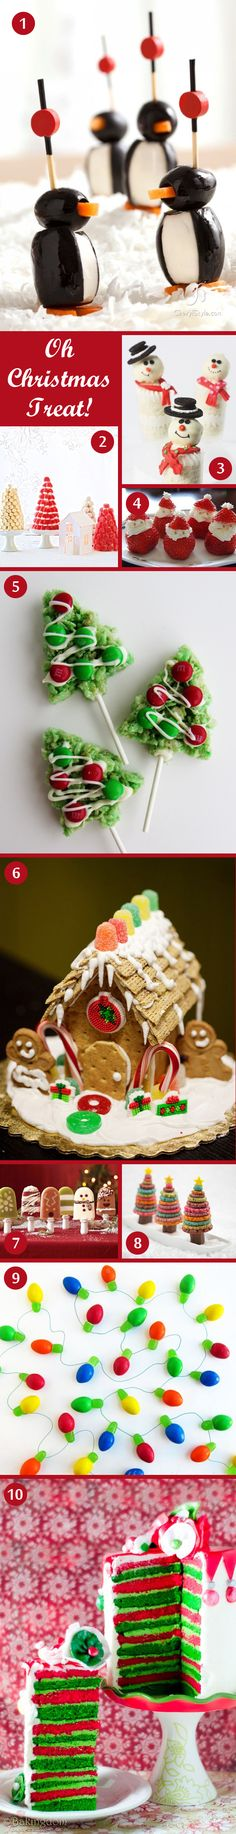 Oh Christmas Treats! Christmas party food ideas  Merry Christmas and Merry Pinning!! www.SoHighOnHeels.com, www.Facebook.com/SoHighOnHeels, www.pinterest.com/AdoraBullBully